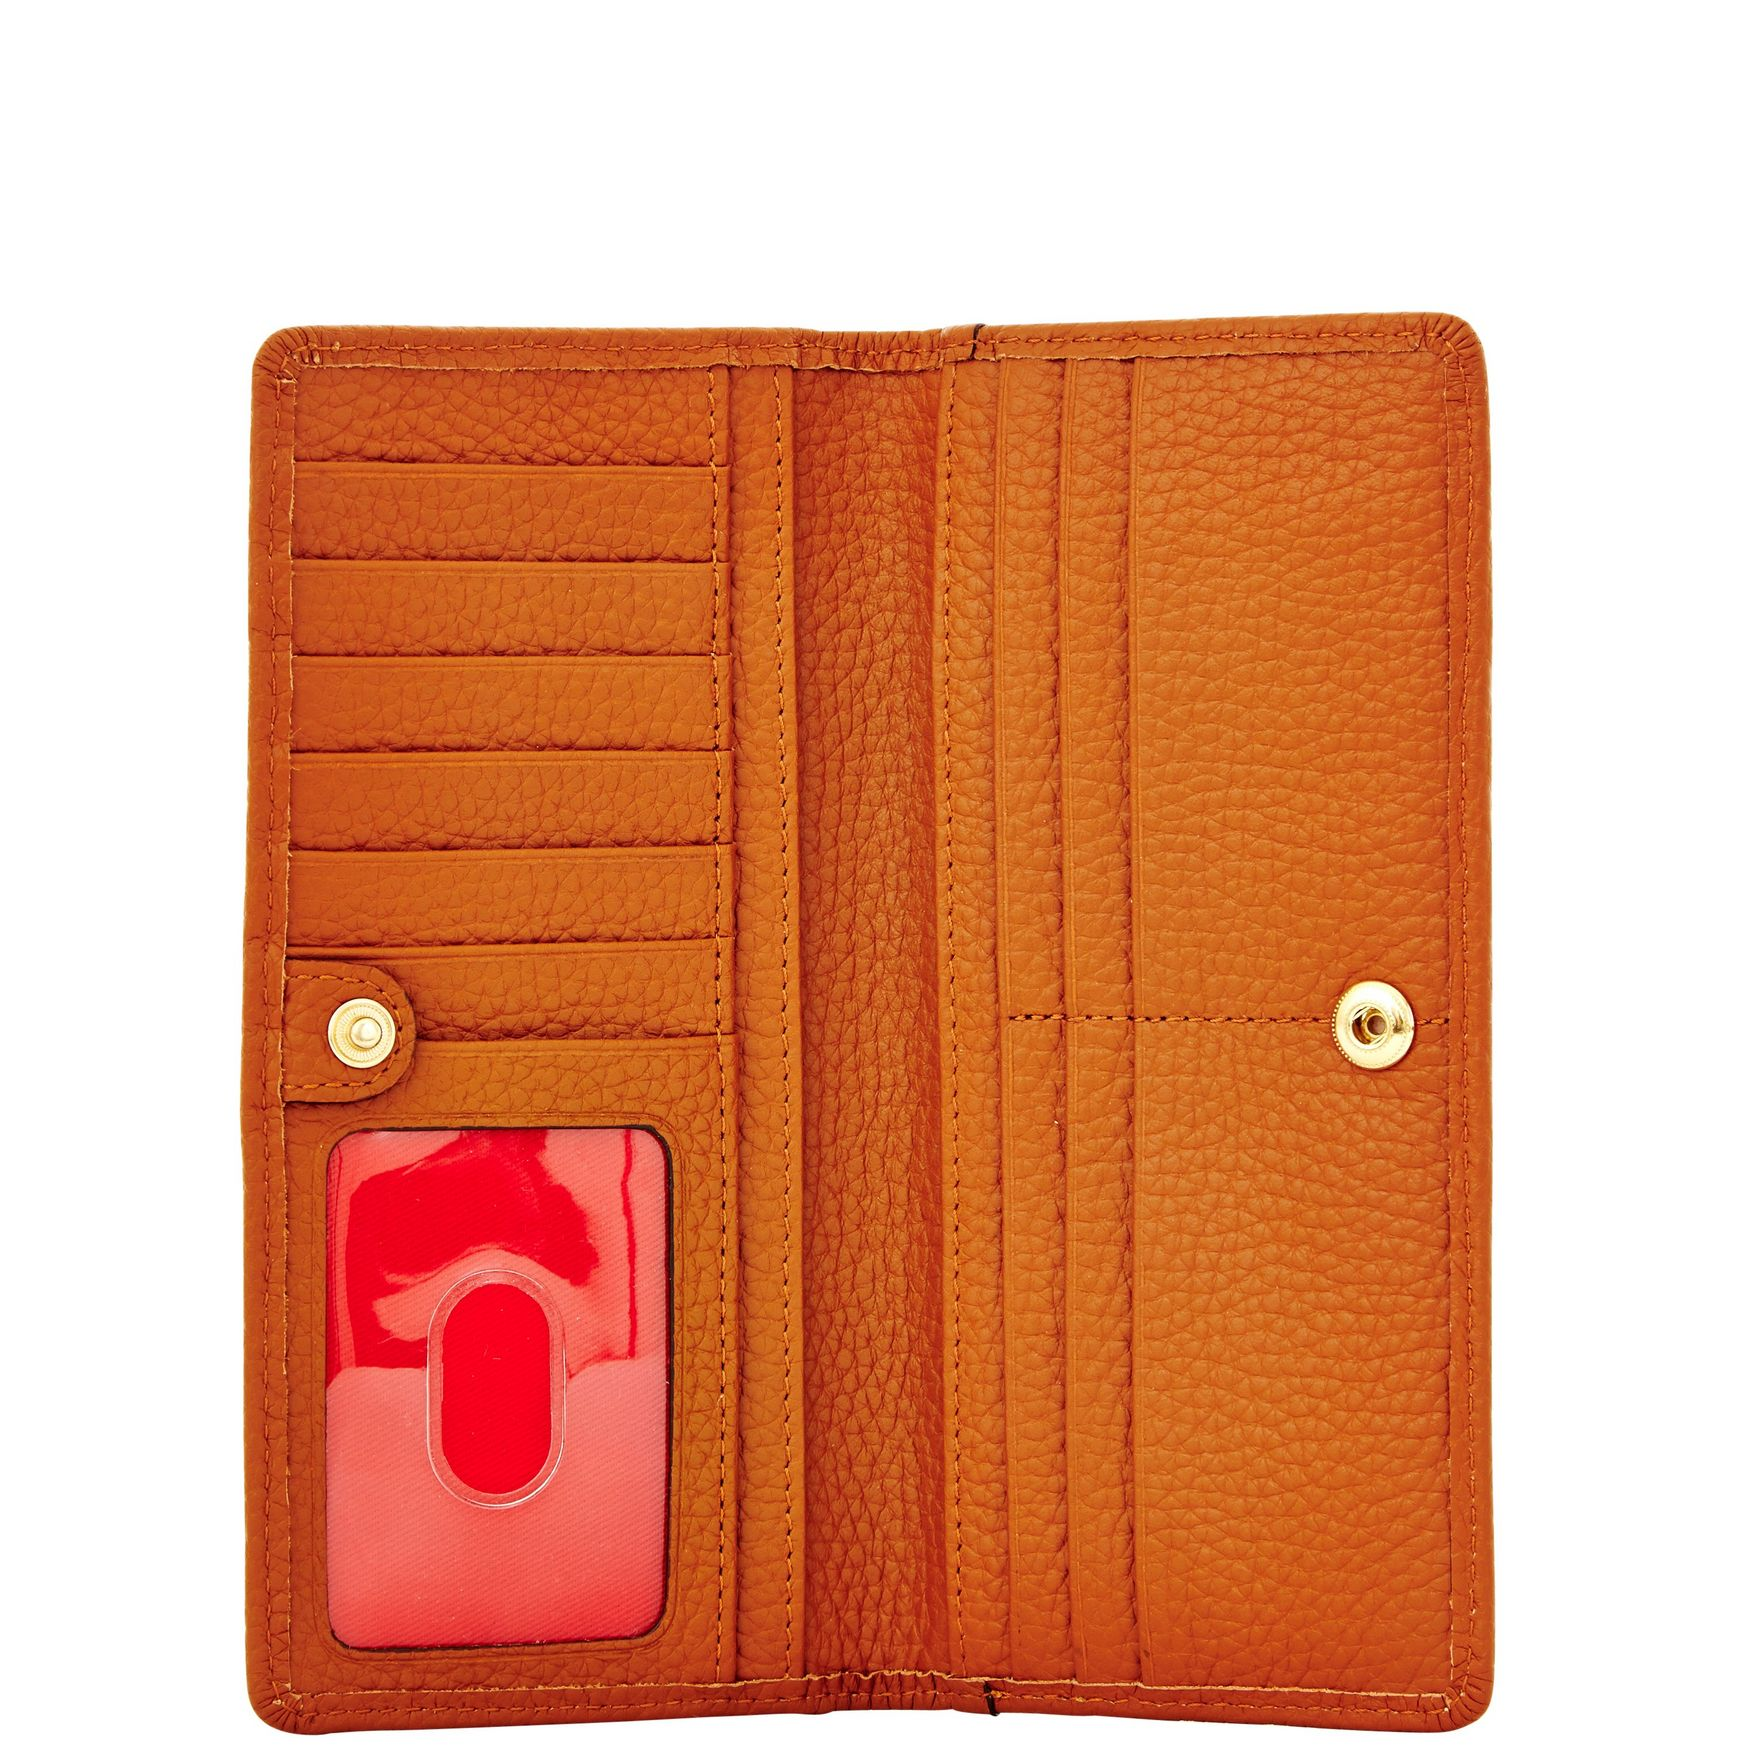 Dooney-amp-Bourke-Pebble-Grain-Slim-Wallet thumbnail 18